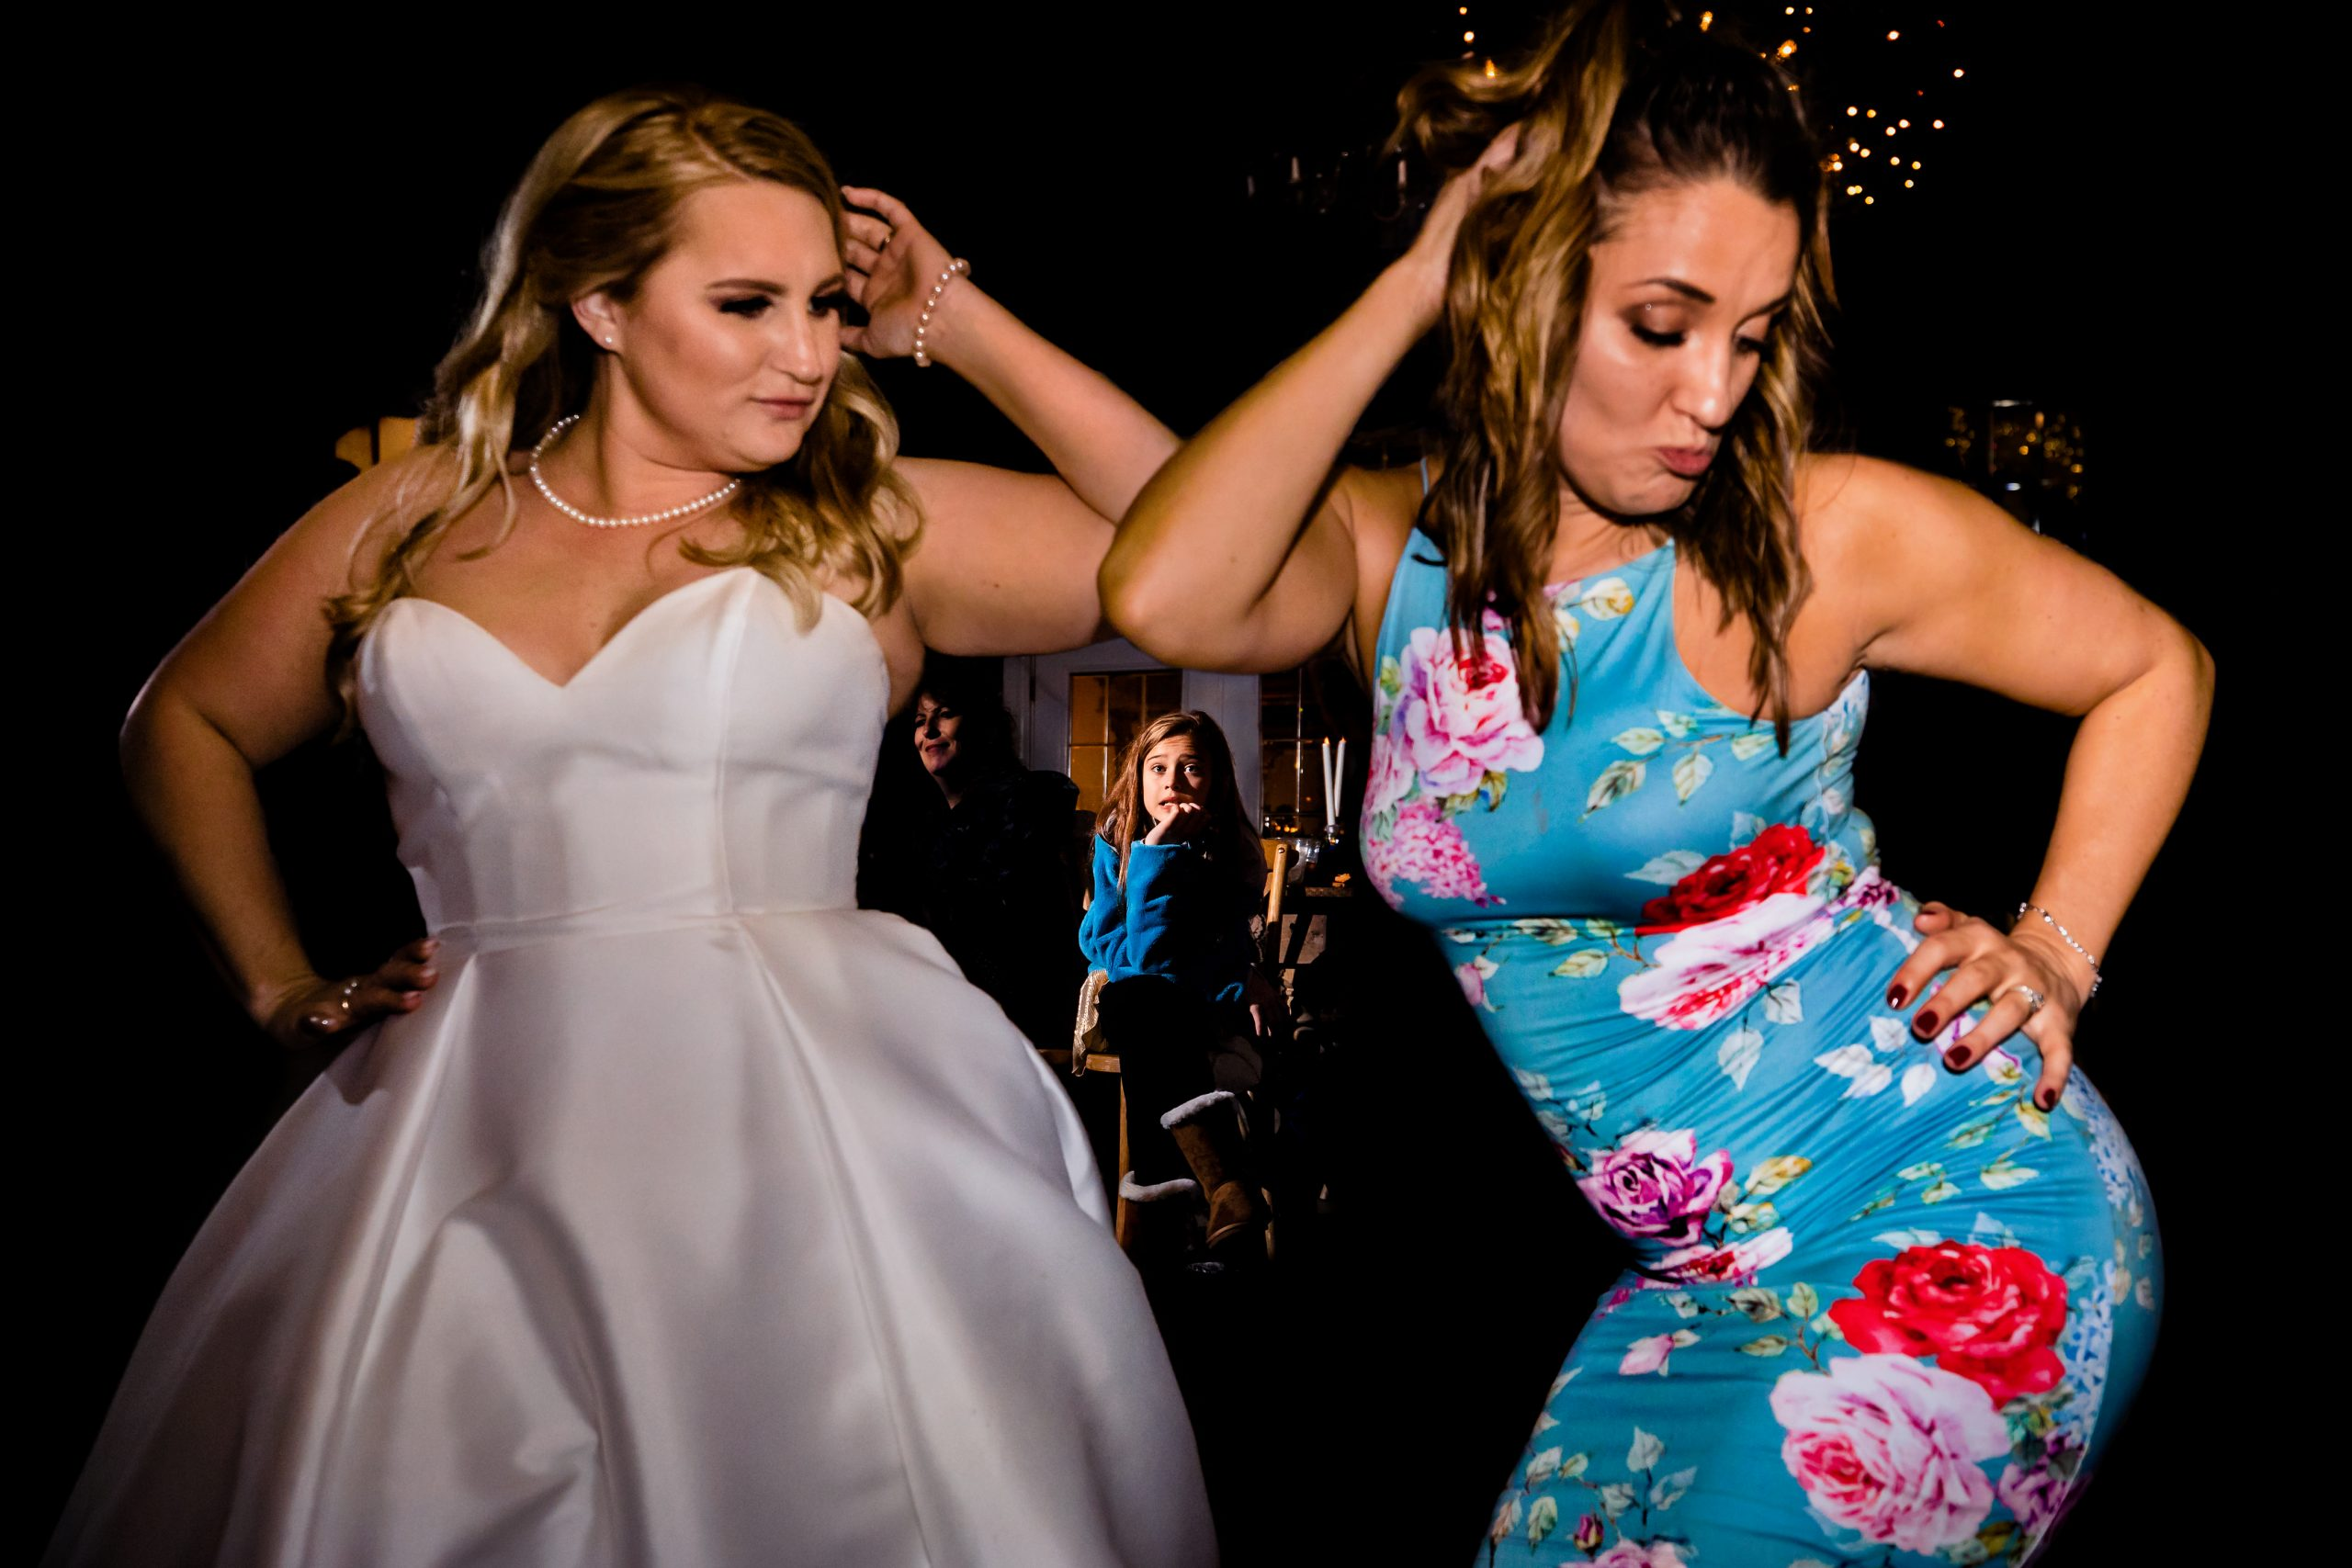 Young girl watches as the bride and her friend work on their dance moves.